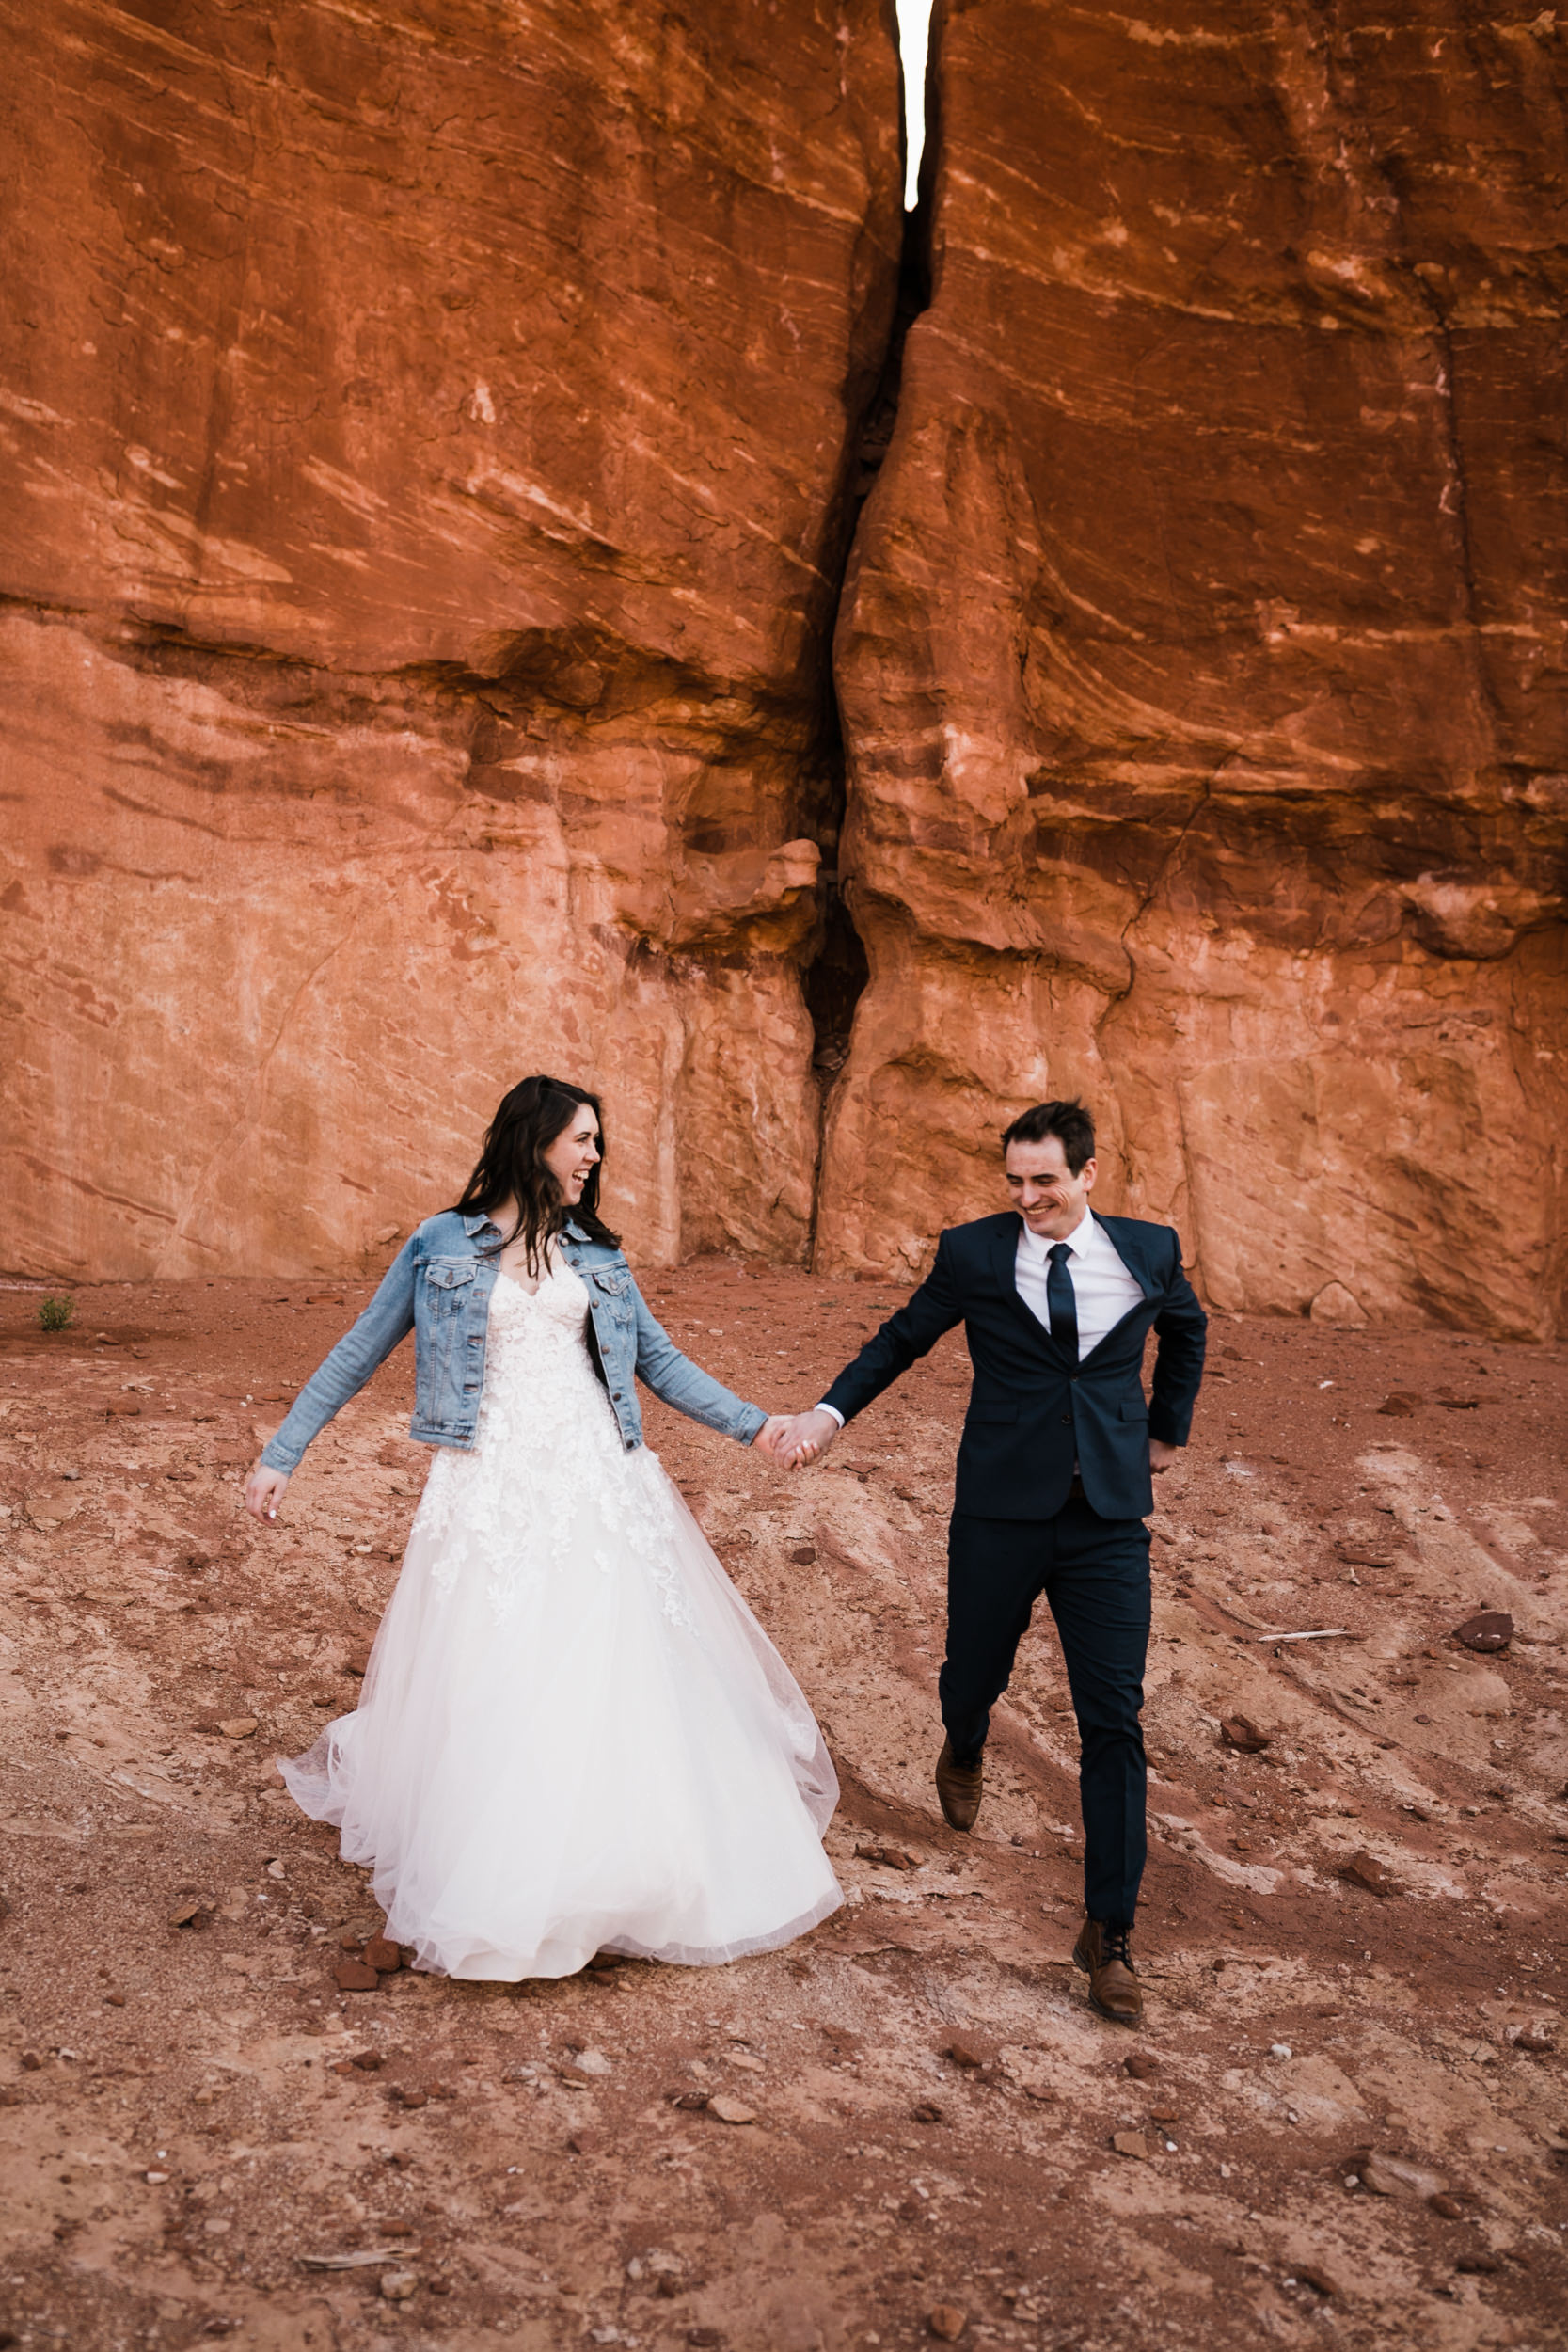 Our couples always have so much fun on their wedding day! This picture is in Moab, Utah at sunrise before their ceremony in Arches National Park.